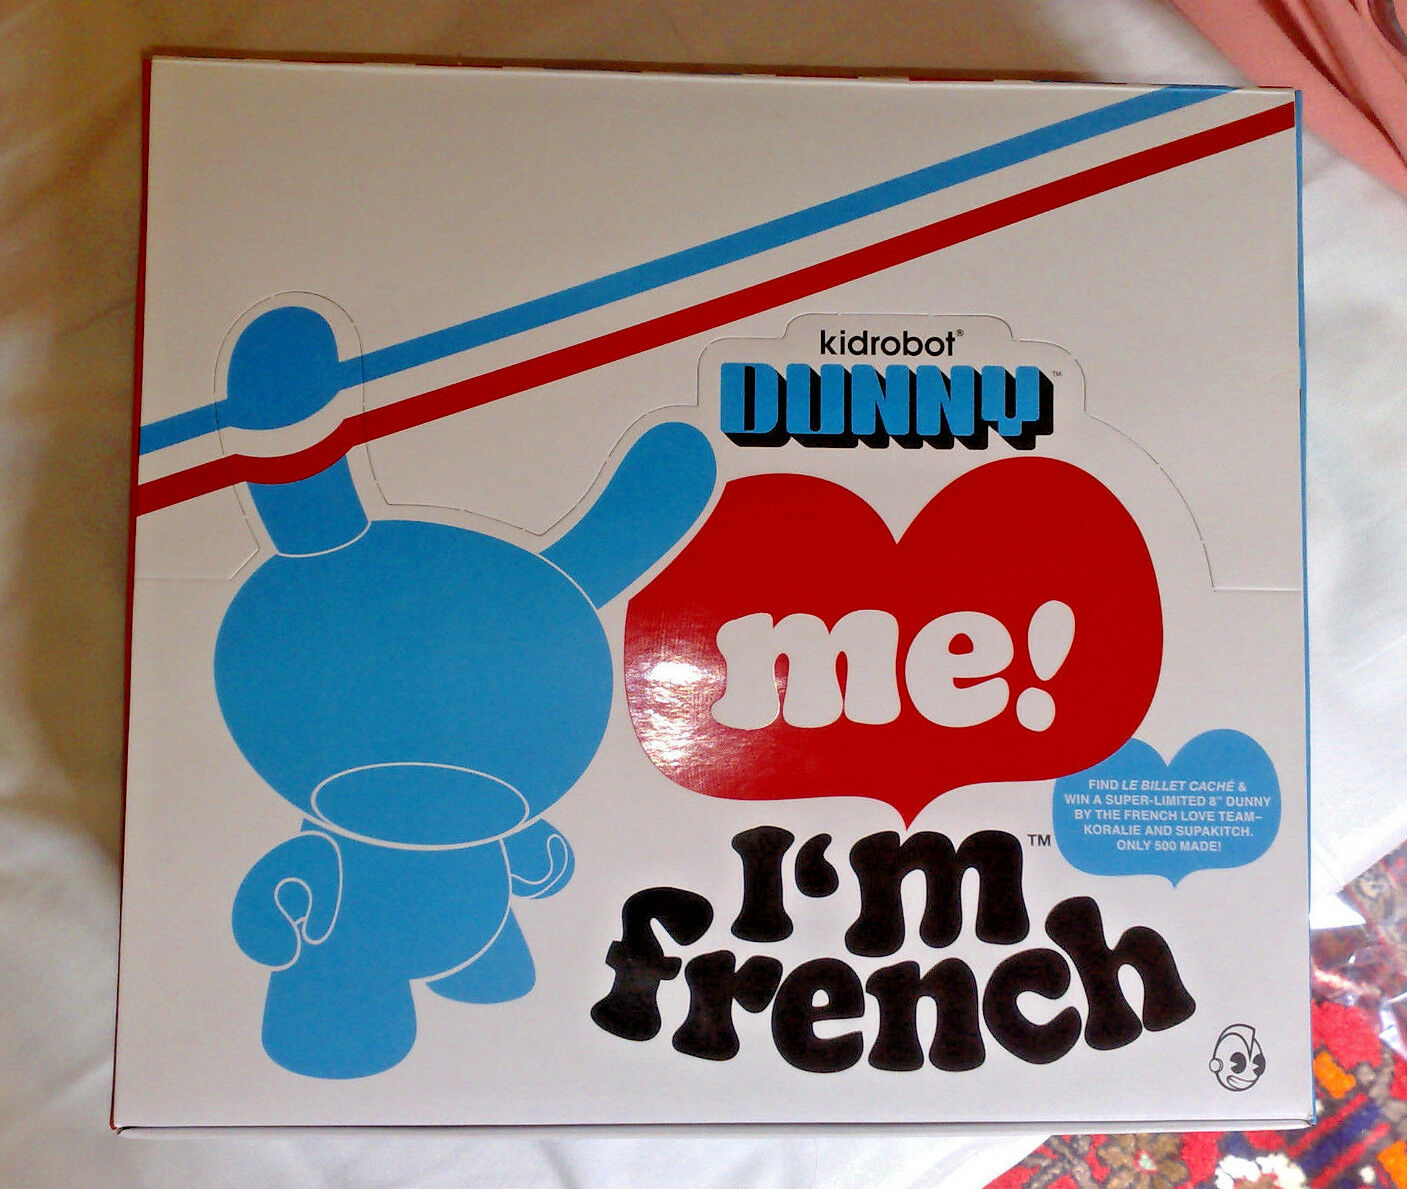 KIDROBOT DUNNY 3  I'M FRENCH Series SEALED SEALED SEALED CASE 25 blind boxes -Mc Bess b3befd